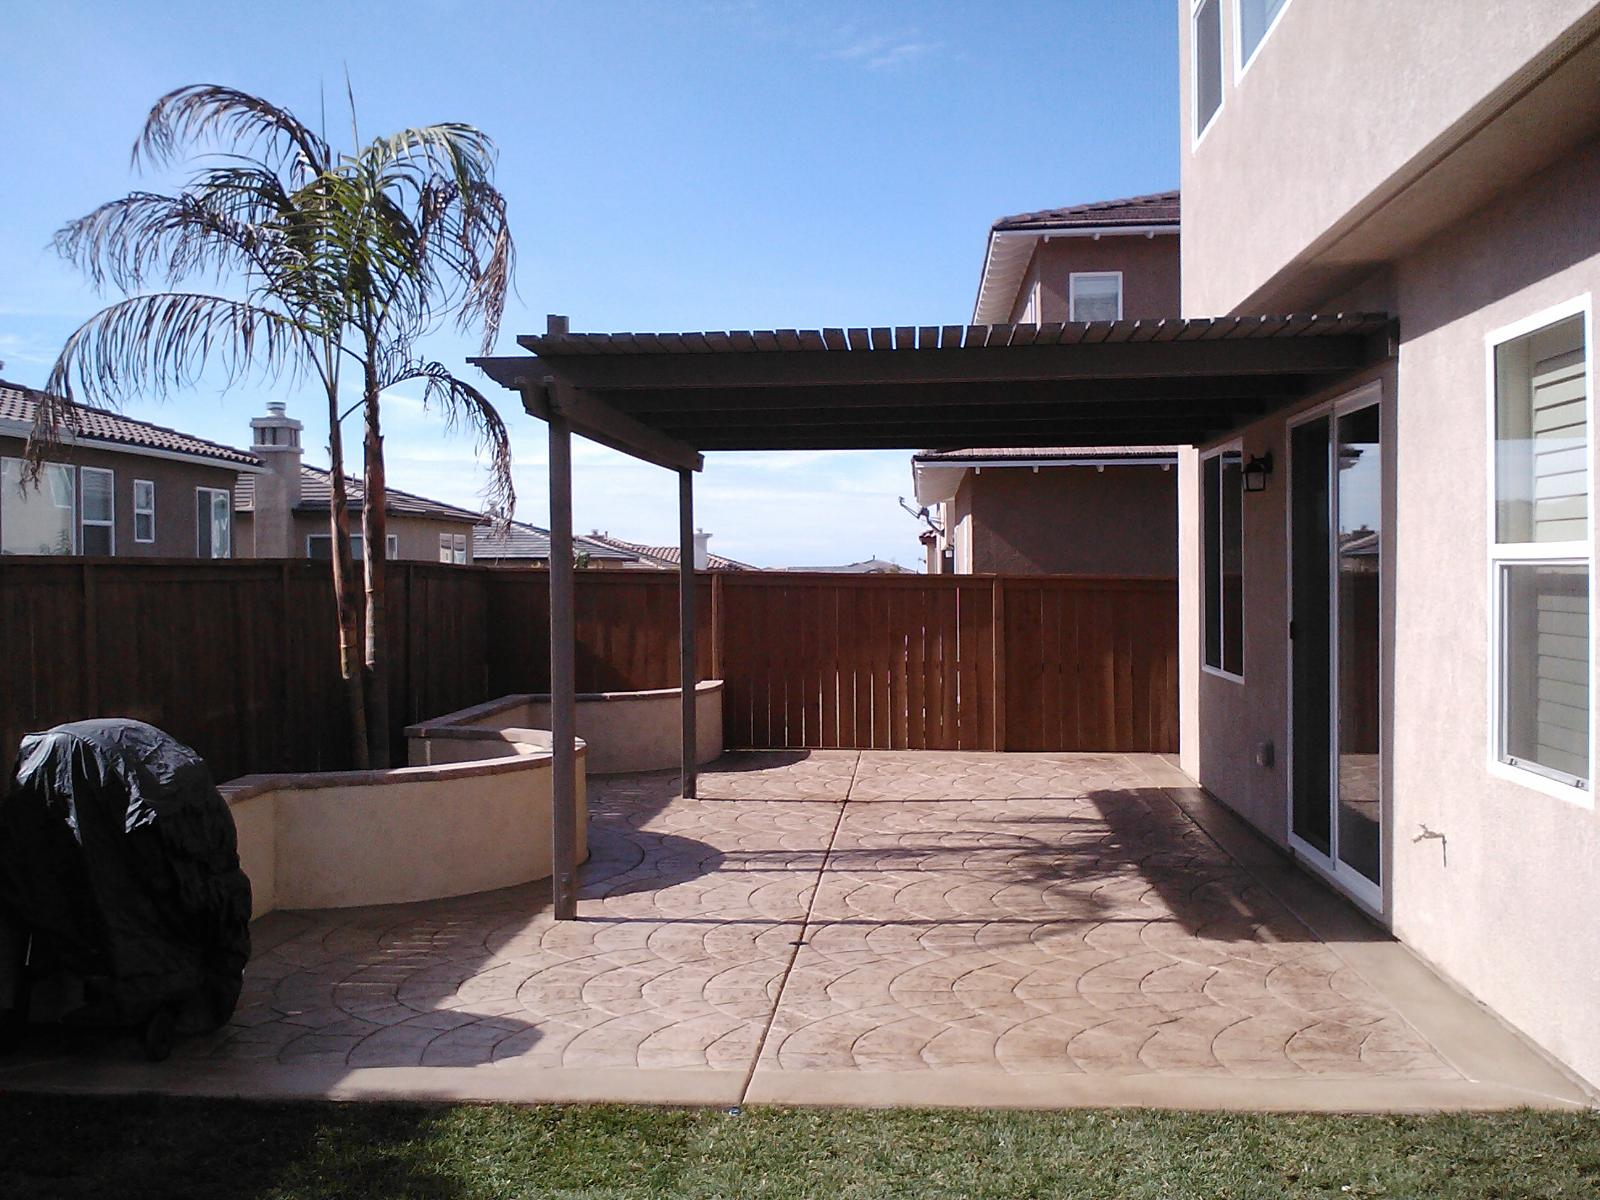 Stamped Patio Concrete Contractor San Diego, Decorative Concrete Patio Contractors